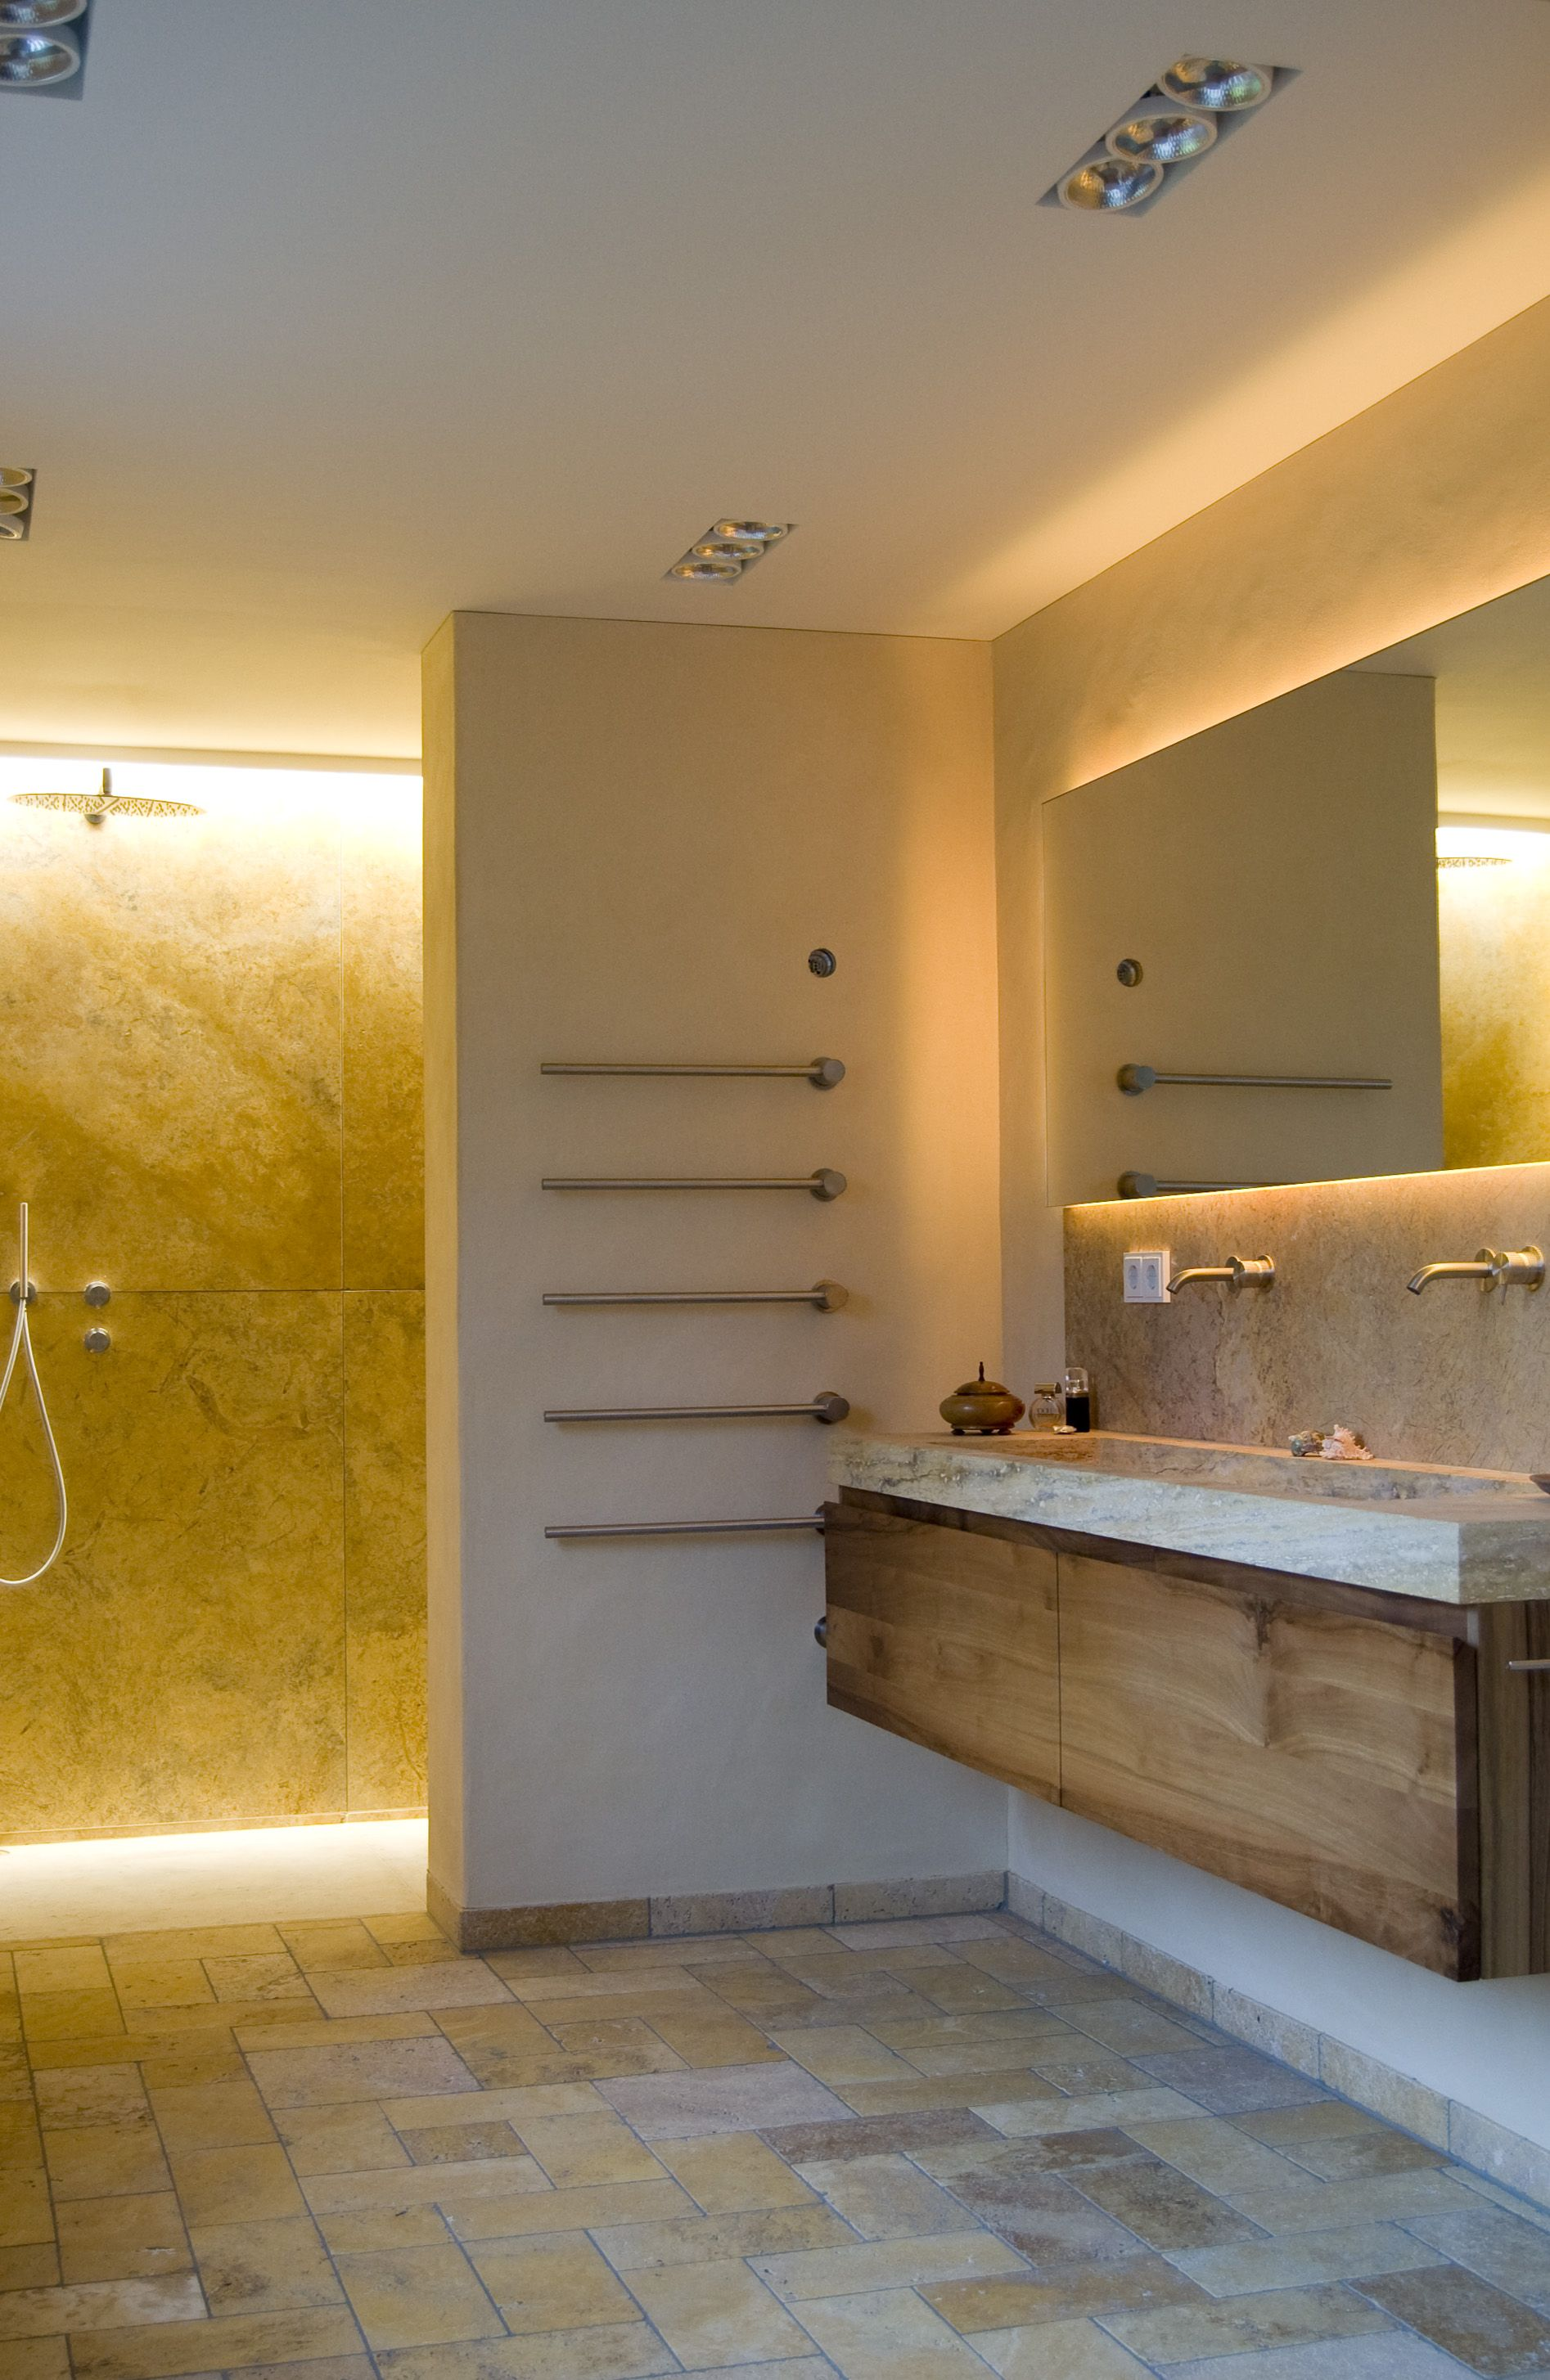 bad in travertin boden mit bodengleicher dusche hinter der trennwand w nde und massiver. Black Bedroom Furniture Sets. Home Design Ideas